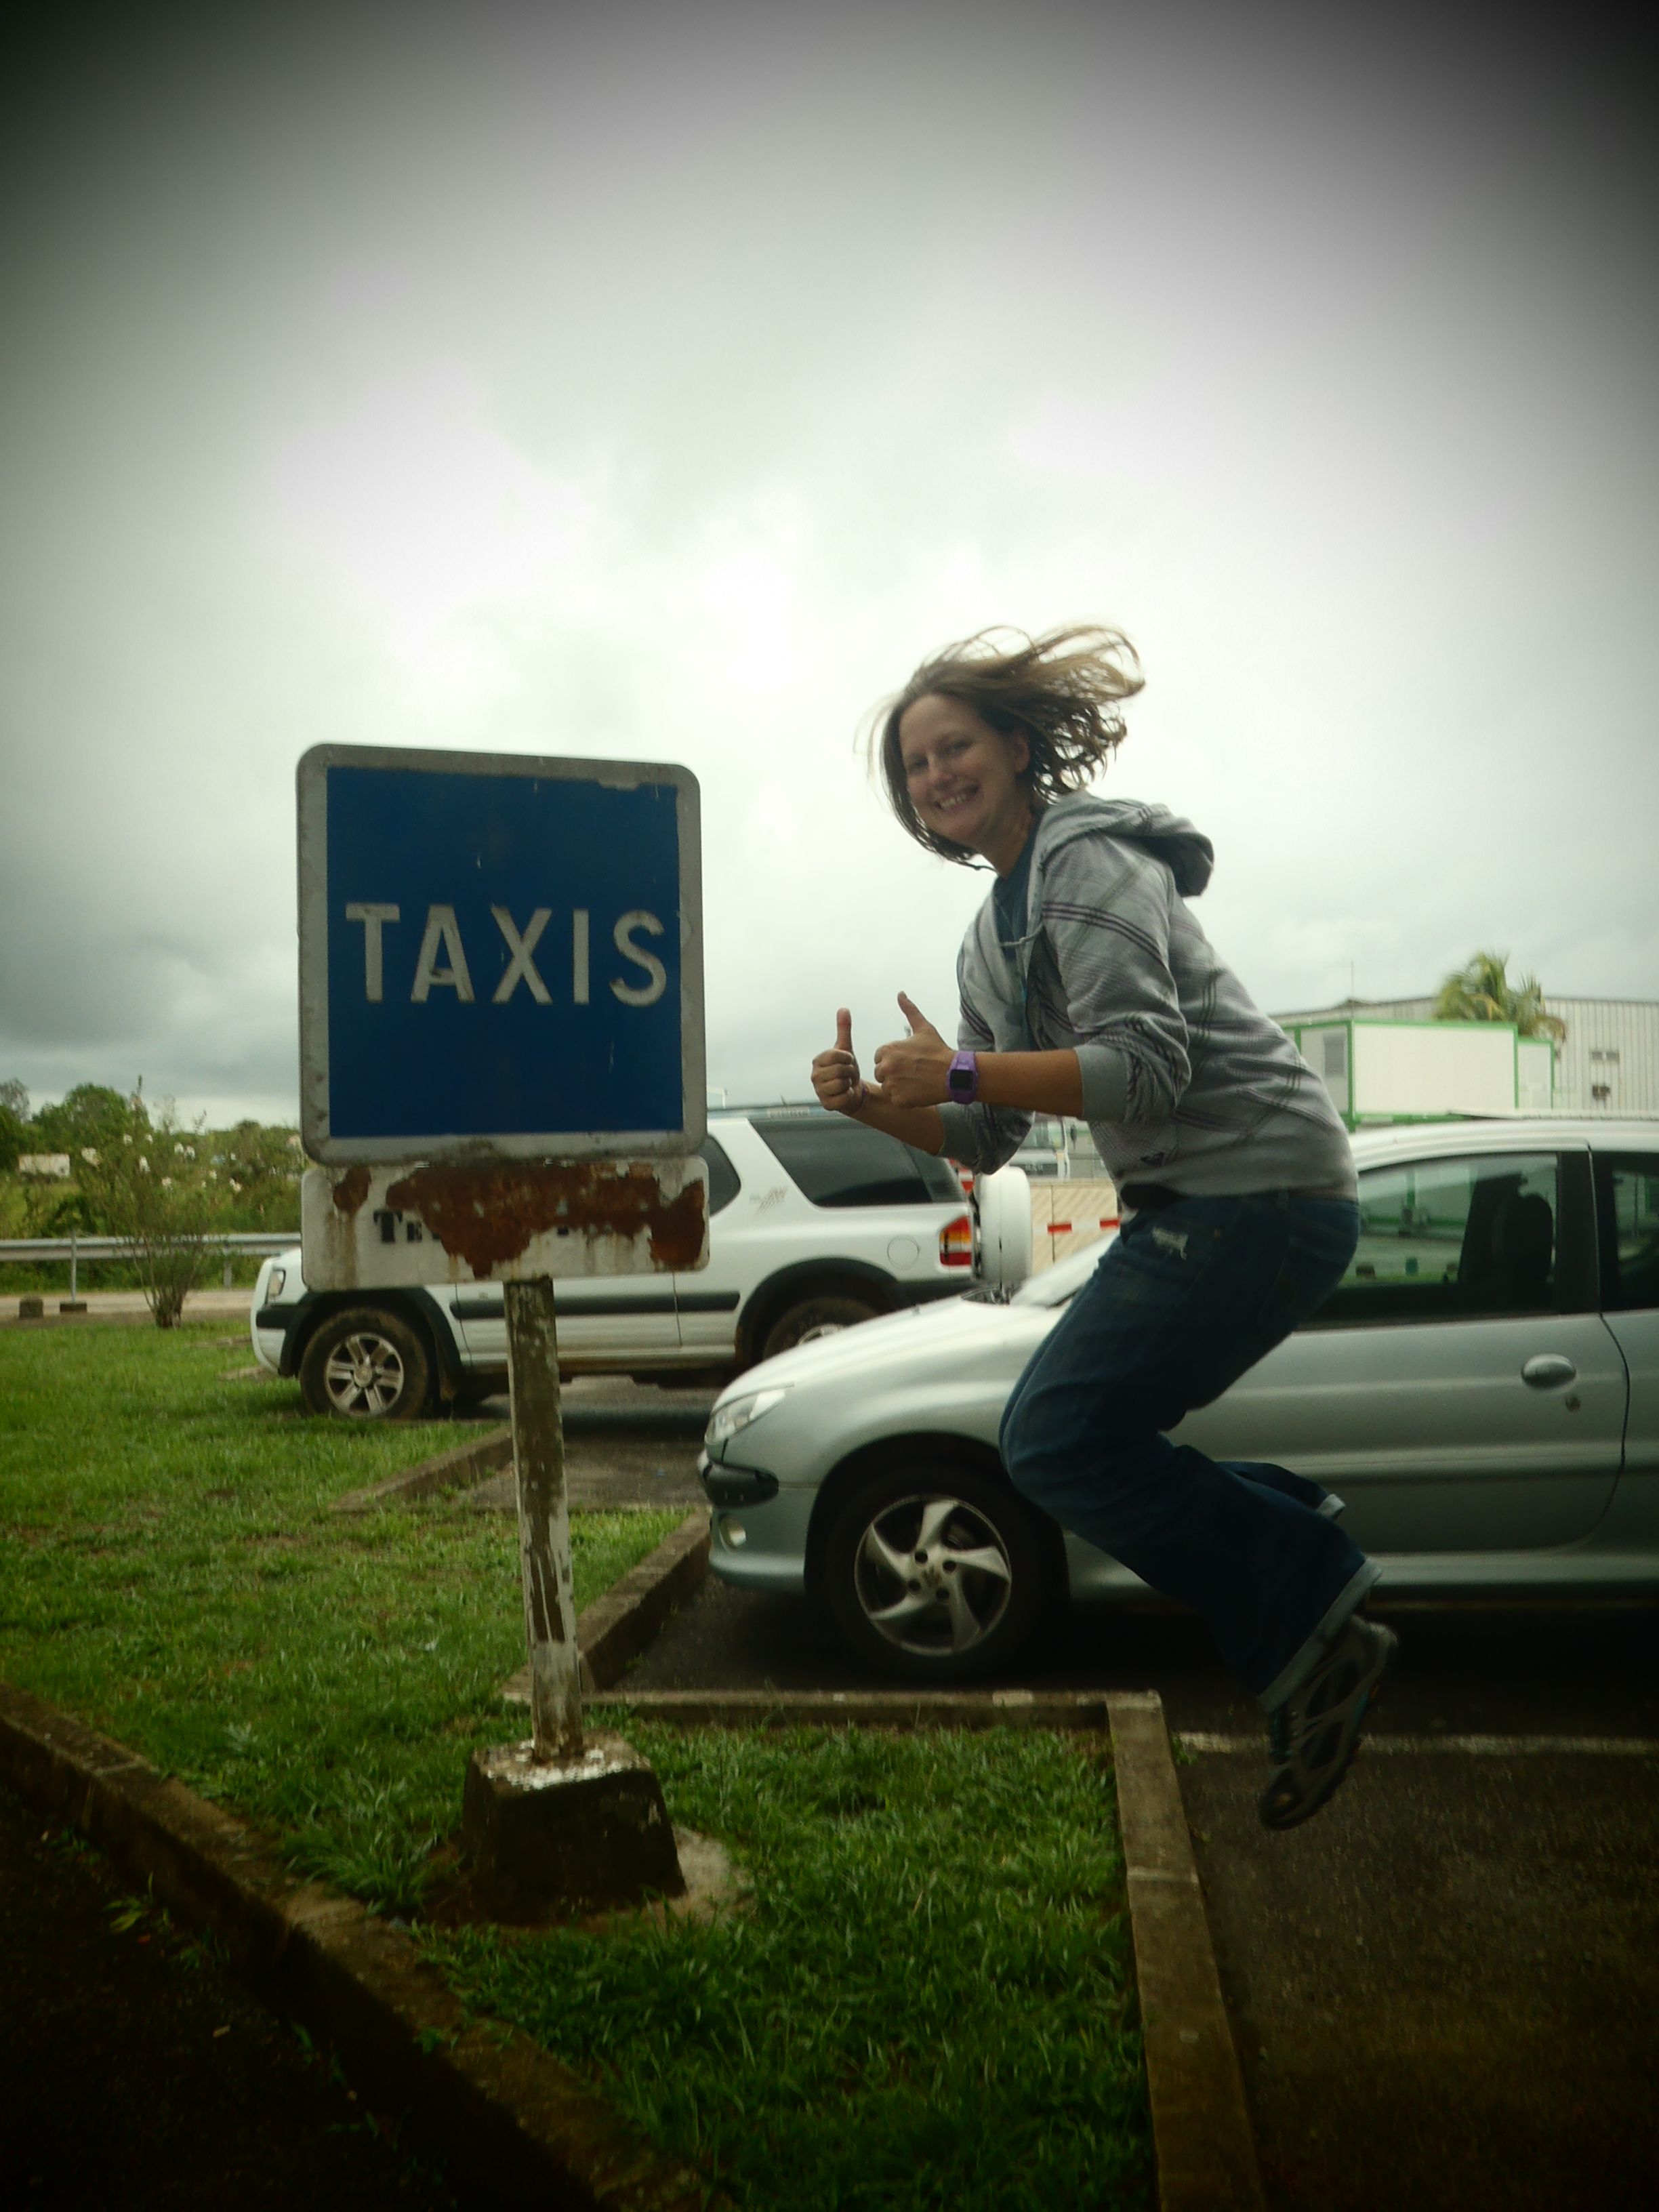 Signature Jumpin' Photograph; Cayenne, French Guiana; 2012